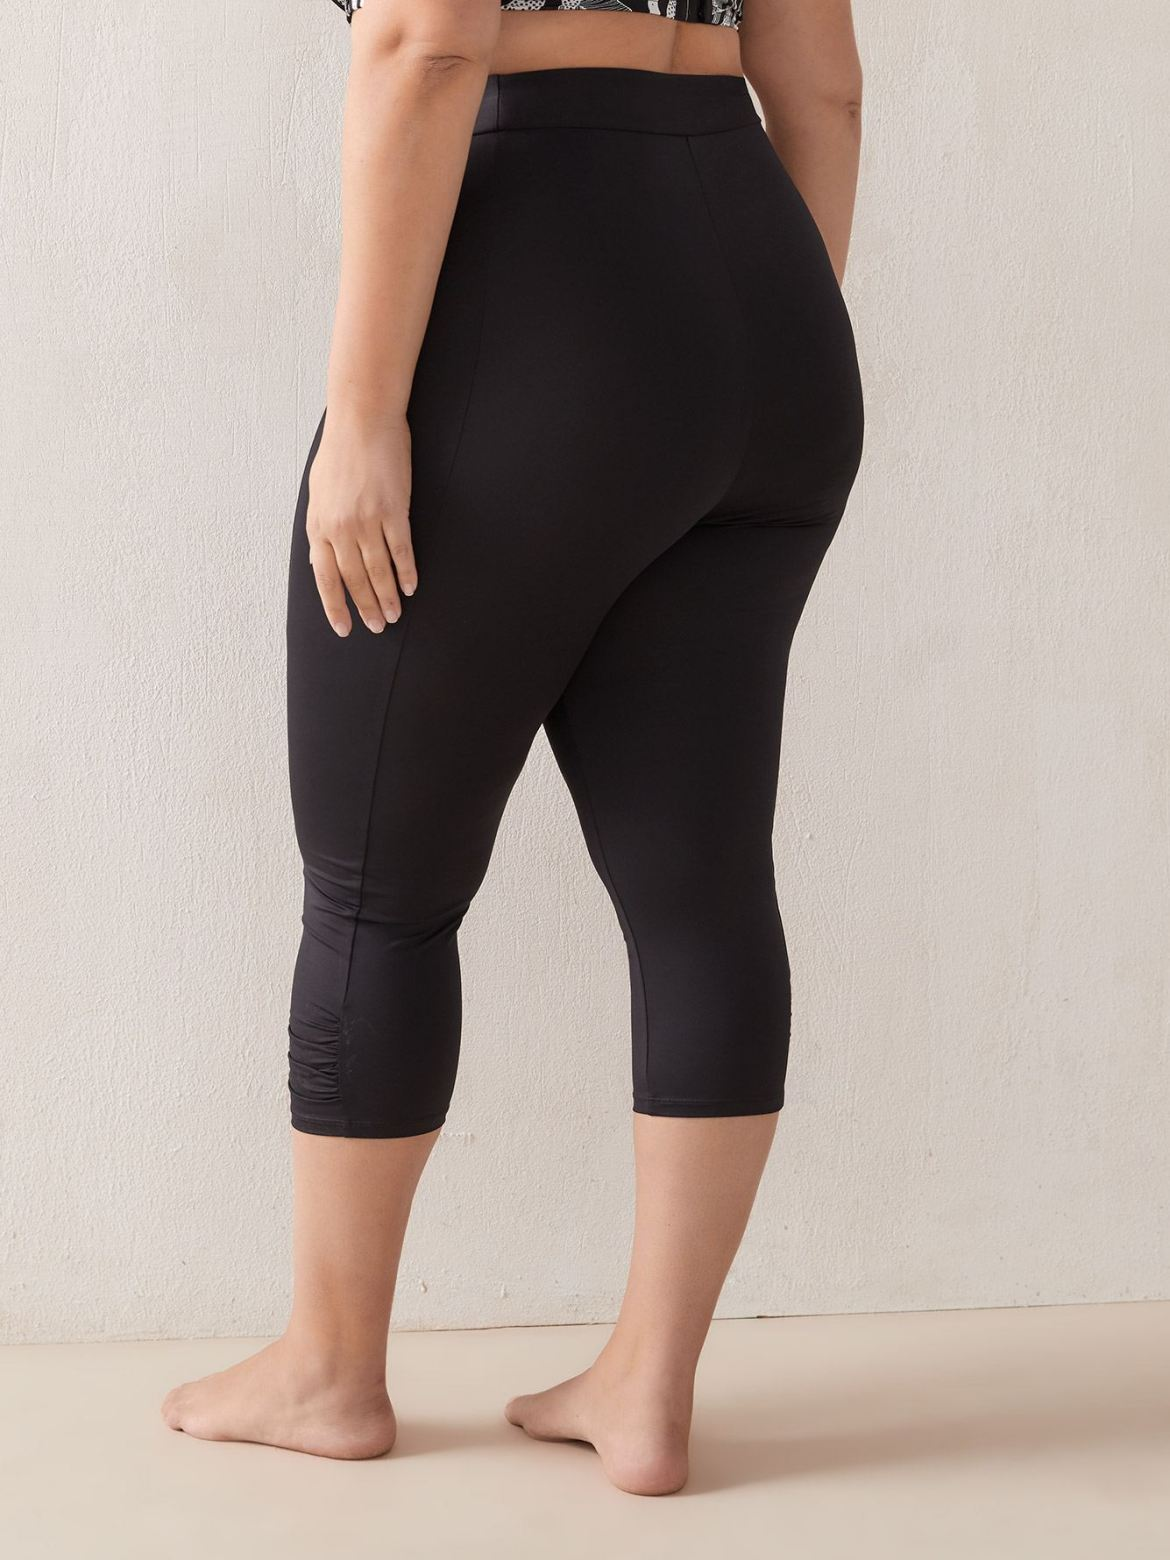 Basic Leggings, Solid Colour - In Every Story